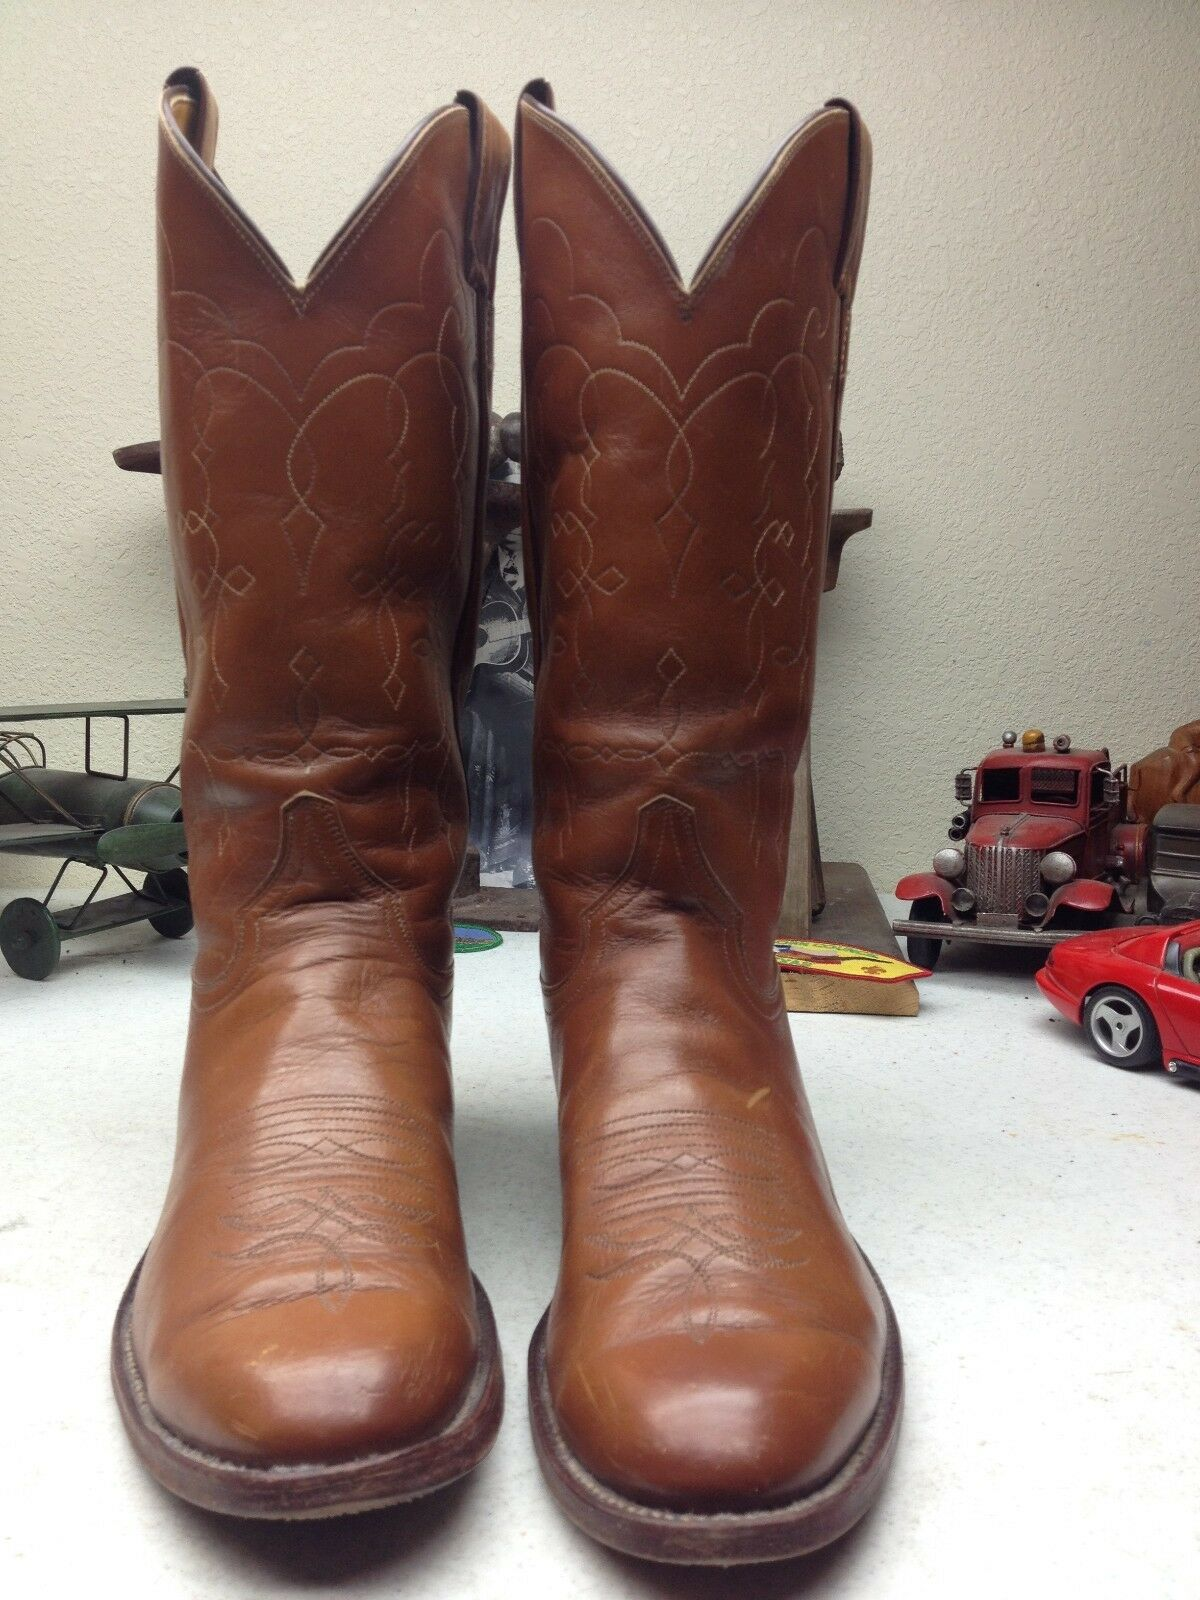 DISTRESSED JUSTIN USA STYLE 5527 BROWN LEATHER WESTERN TRAIL BOSS BOOTS 9.5 B